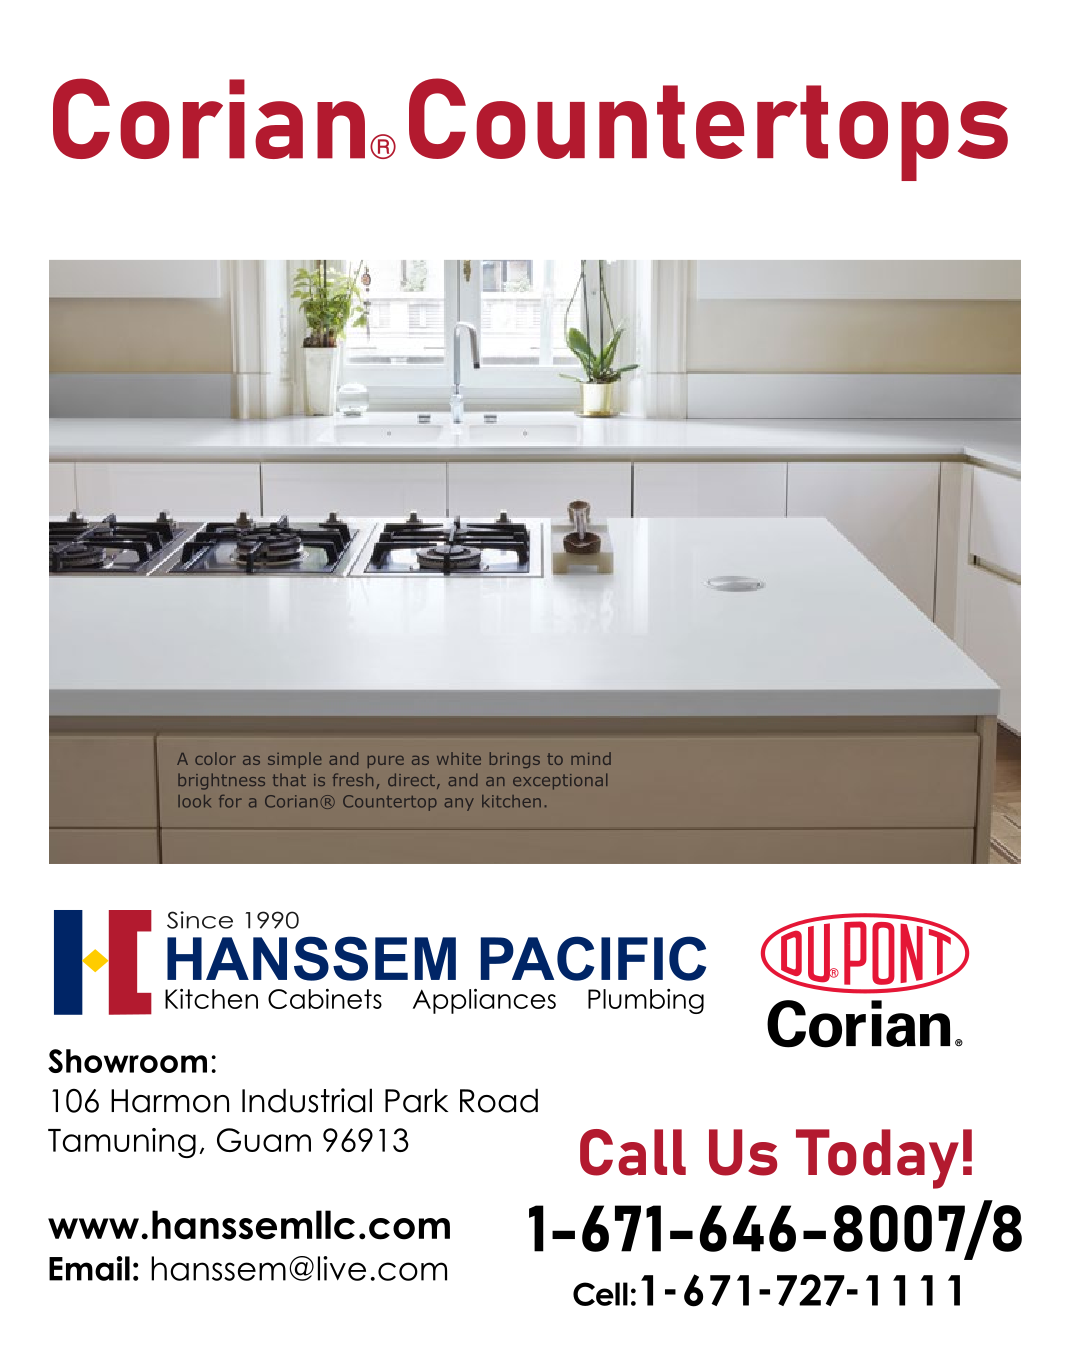 dupont-corian-countertops-by-hanssem-pacific